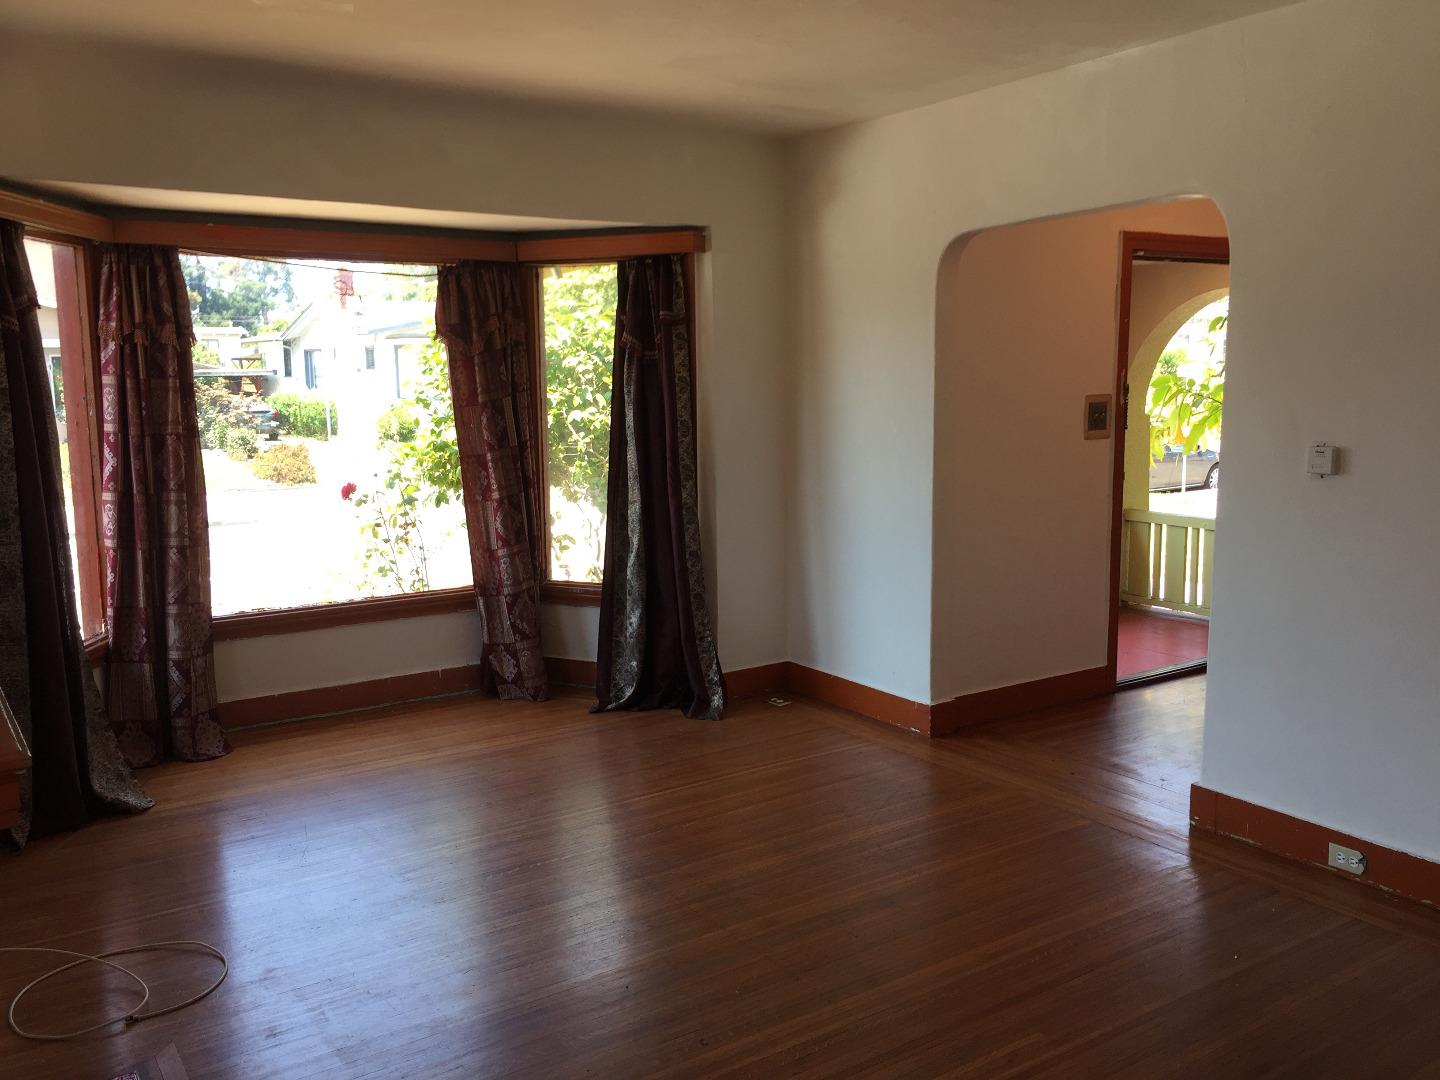 Additional photo for property listing at 2736 Bartlett Street 2736 Bartlett Street Oakland, California 94602 United States